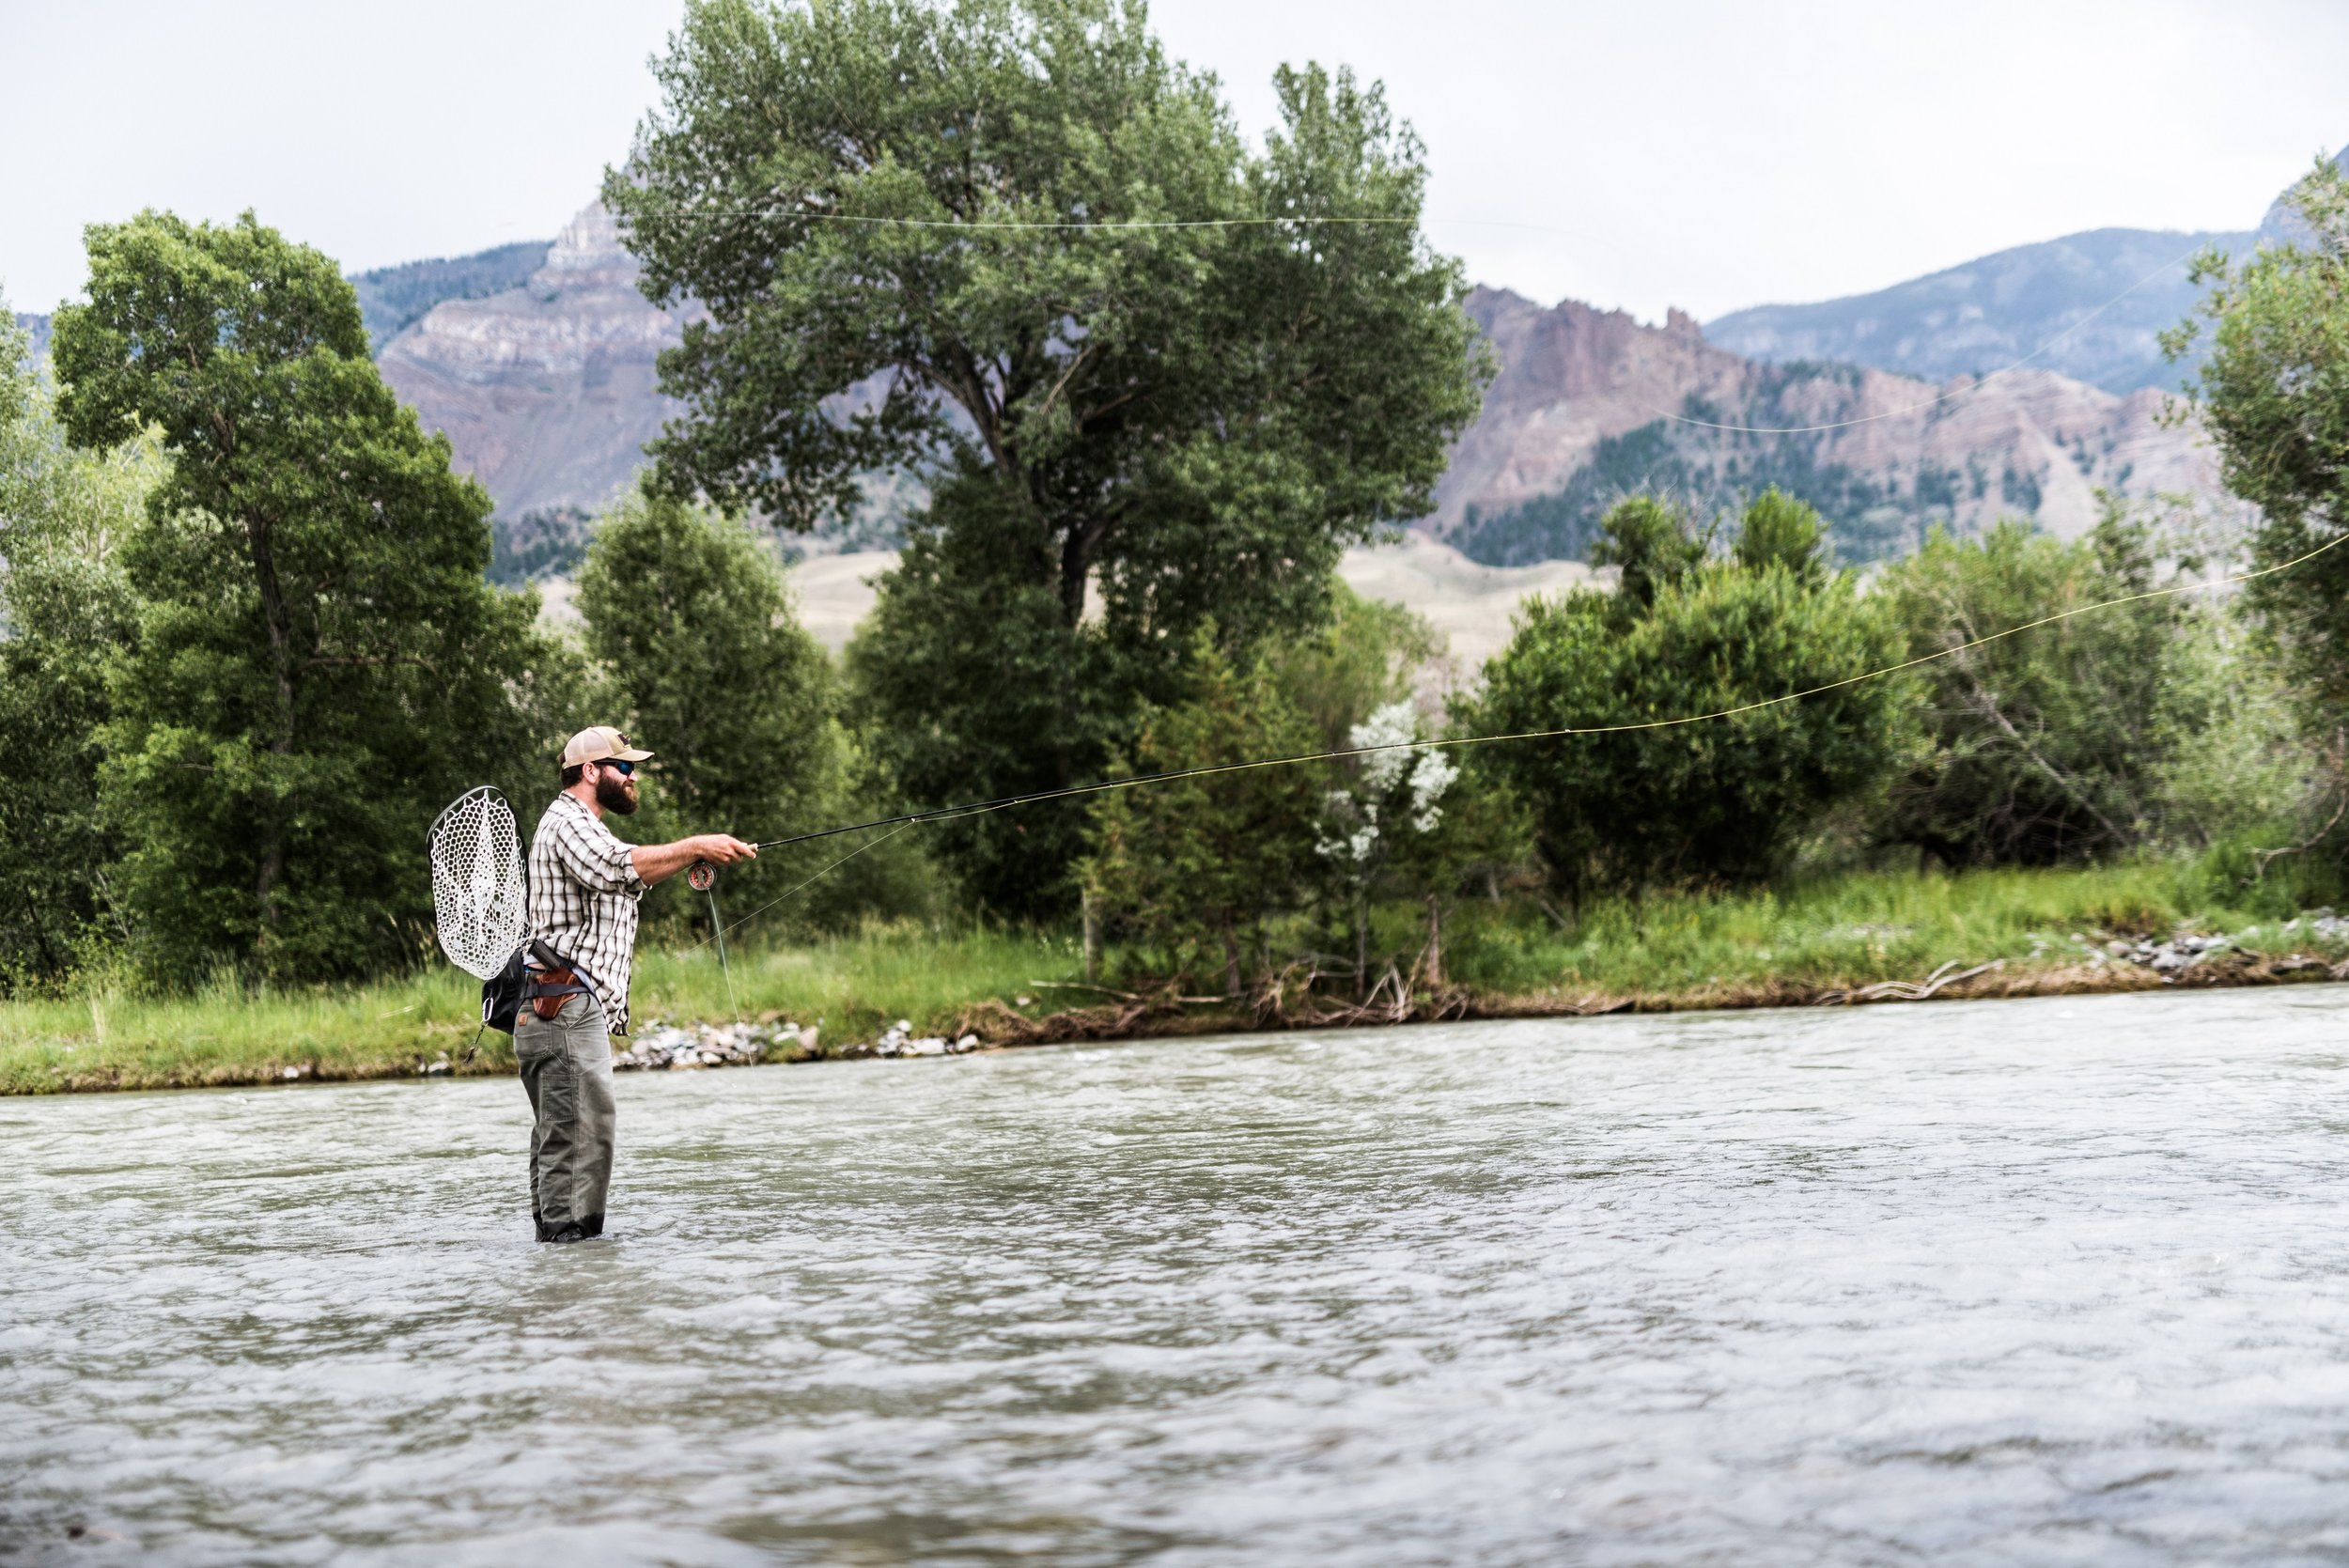 rates* - A half-day guided fly fishing trip for two anglers is $225. Add one angler for an additional $25.A full-day guided fly fishing trip for two anglers is $350. Add one angler for an additional $50.*a bagged lunch can be provided upon request  for $10 per person